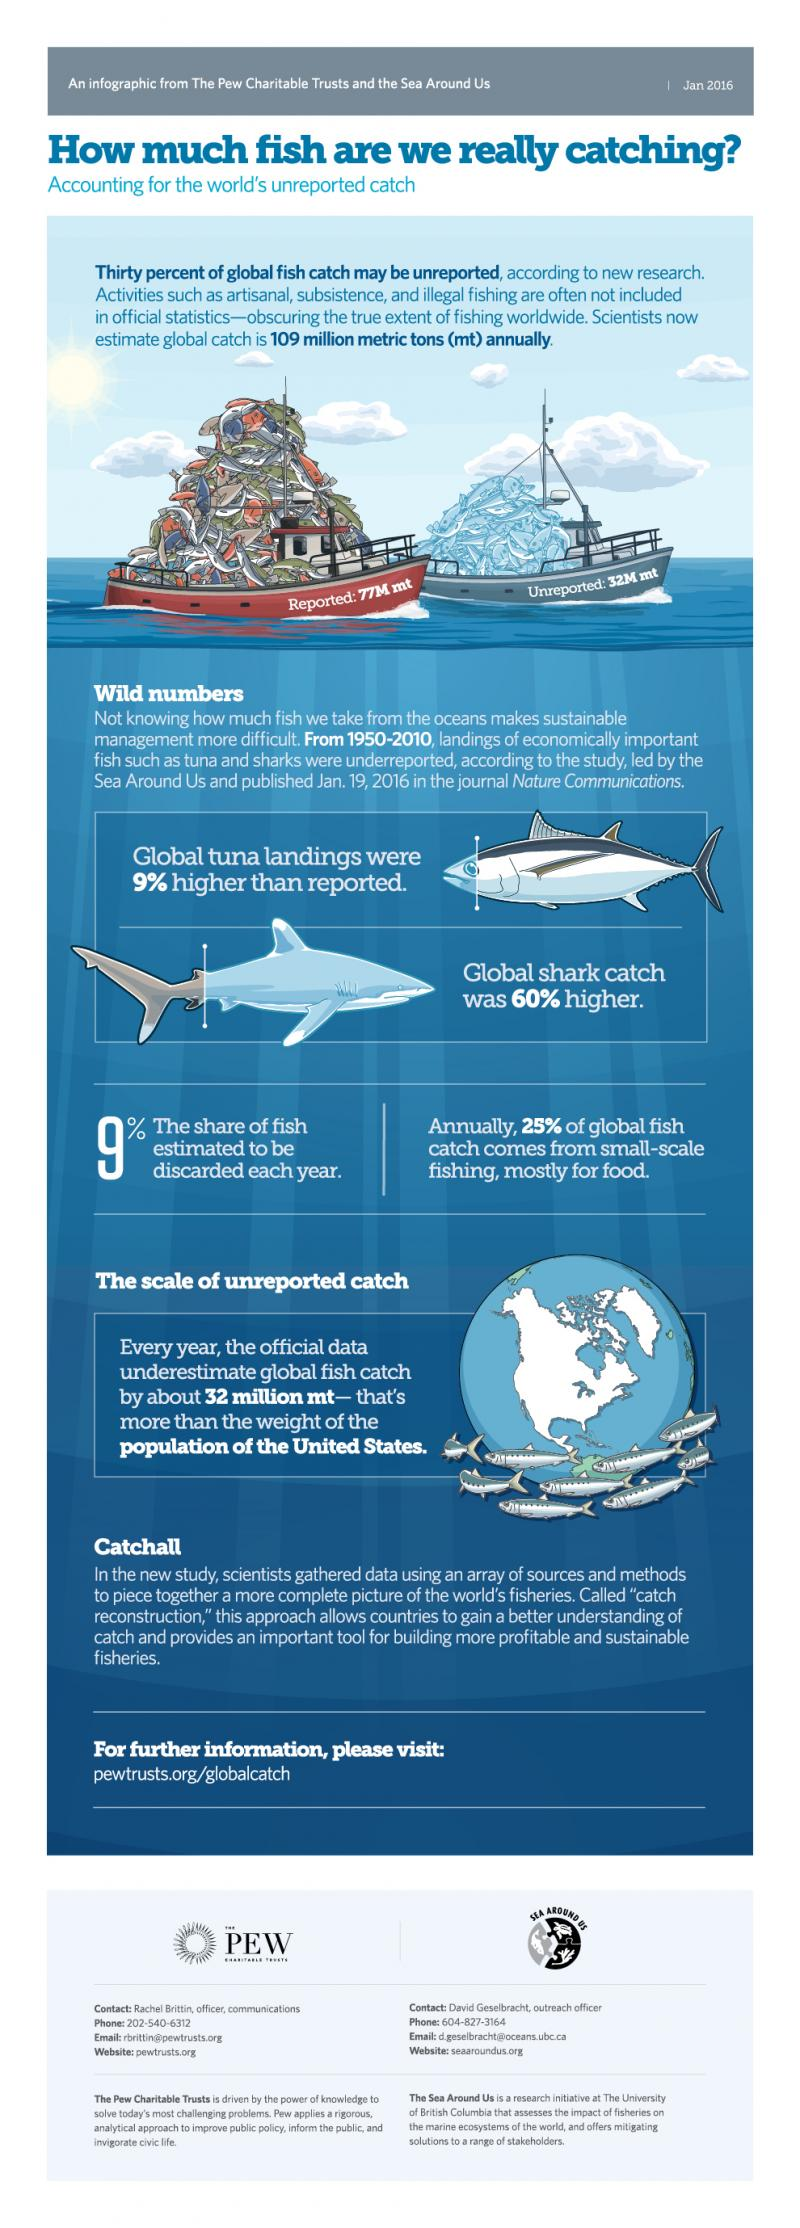 Pew Charitable Trusts - How Much Fish Are We Catching